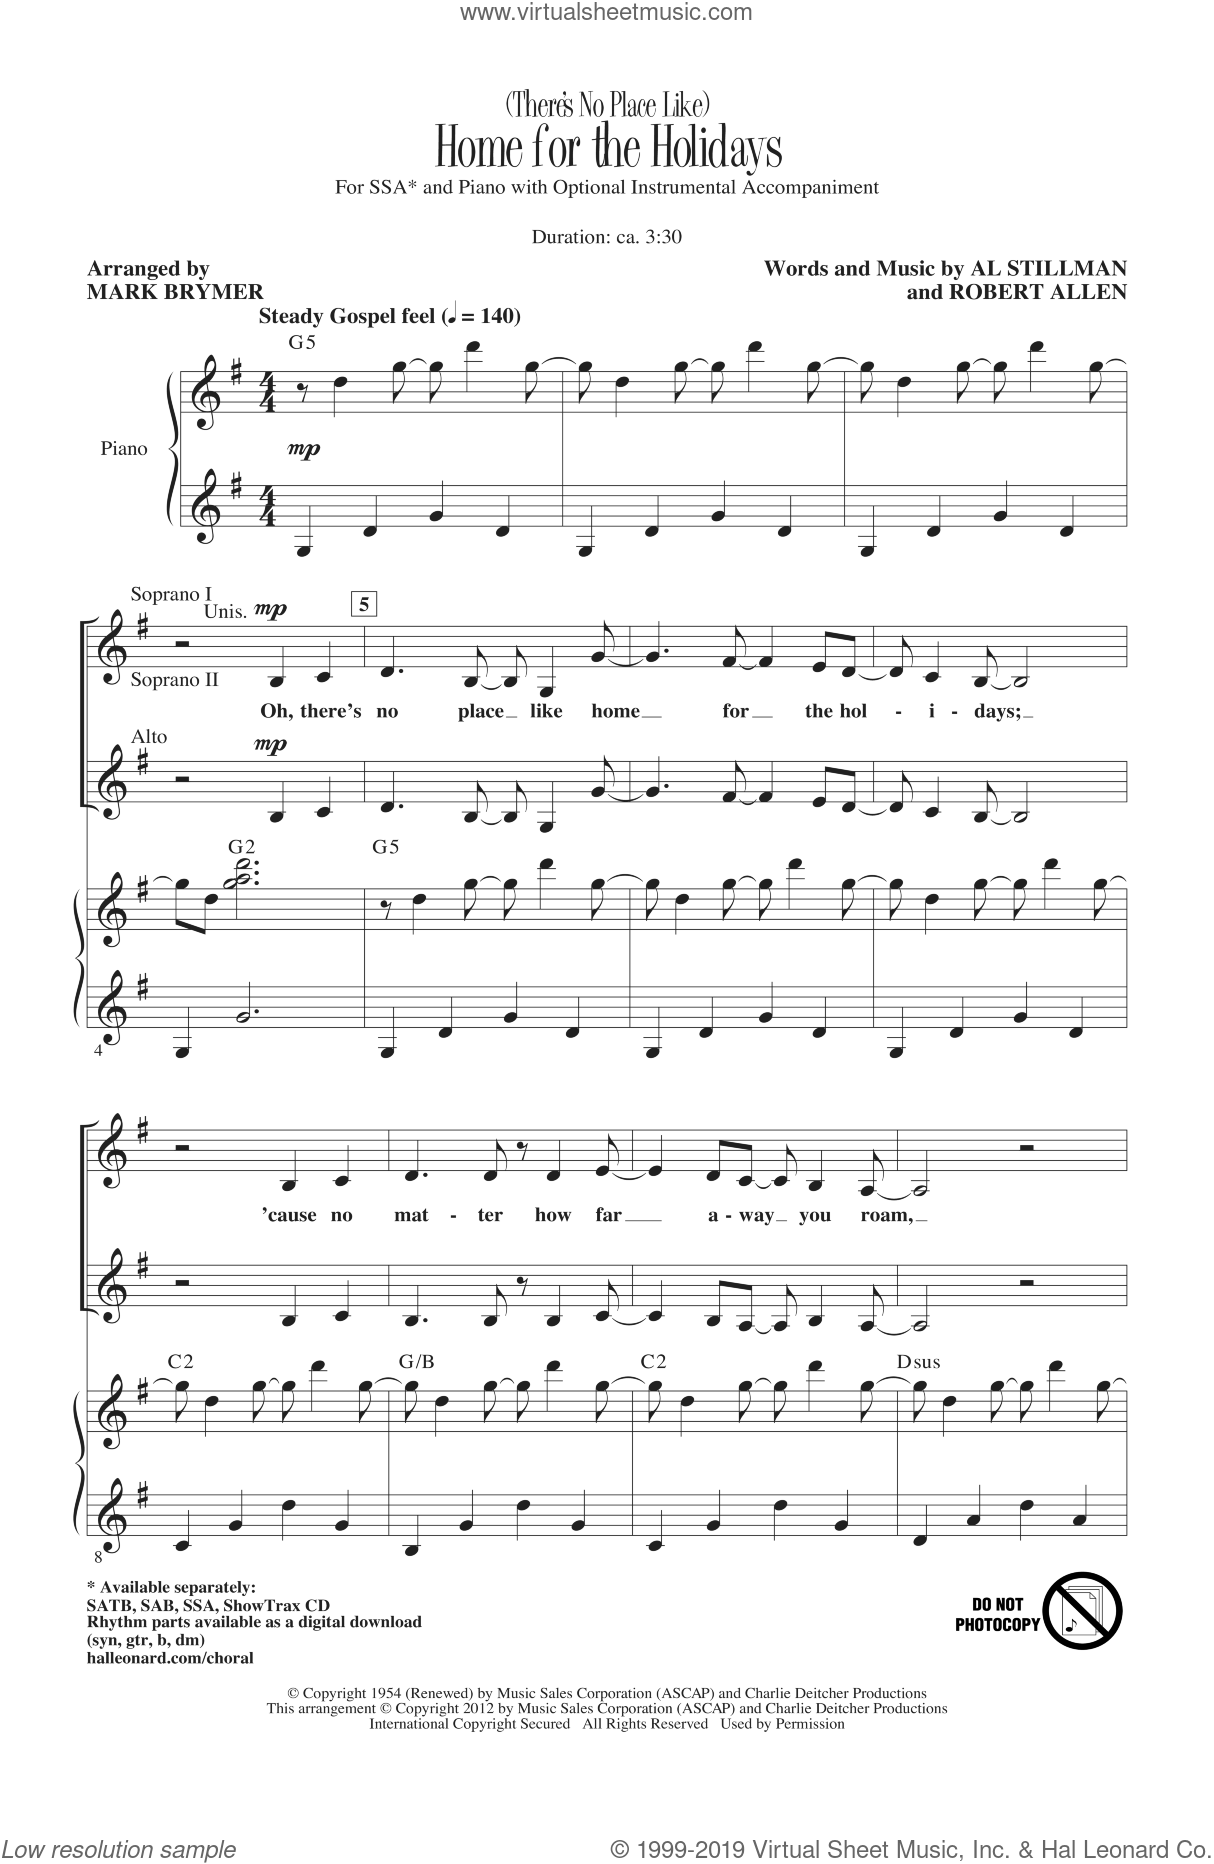 (There's No Place Like) Home For The Holidays sheet music for choir and piano (SSA) by Robert Allen